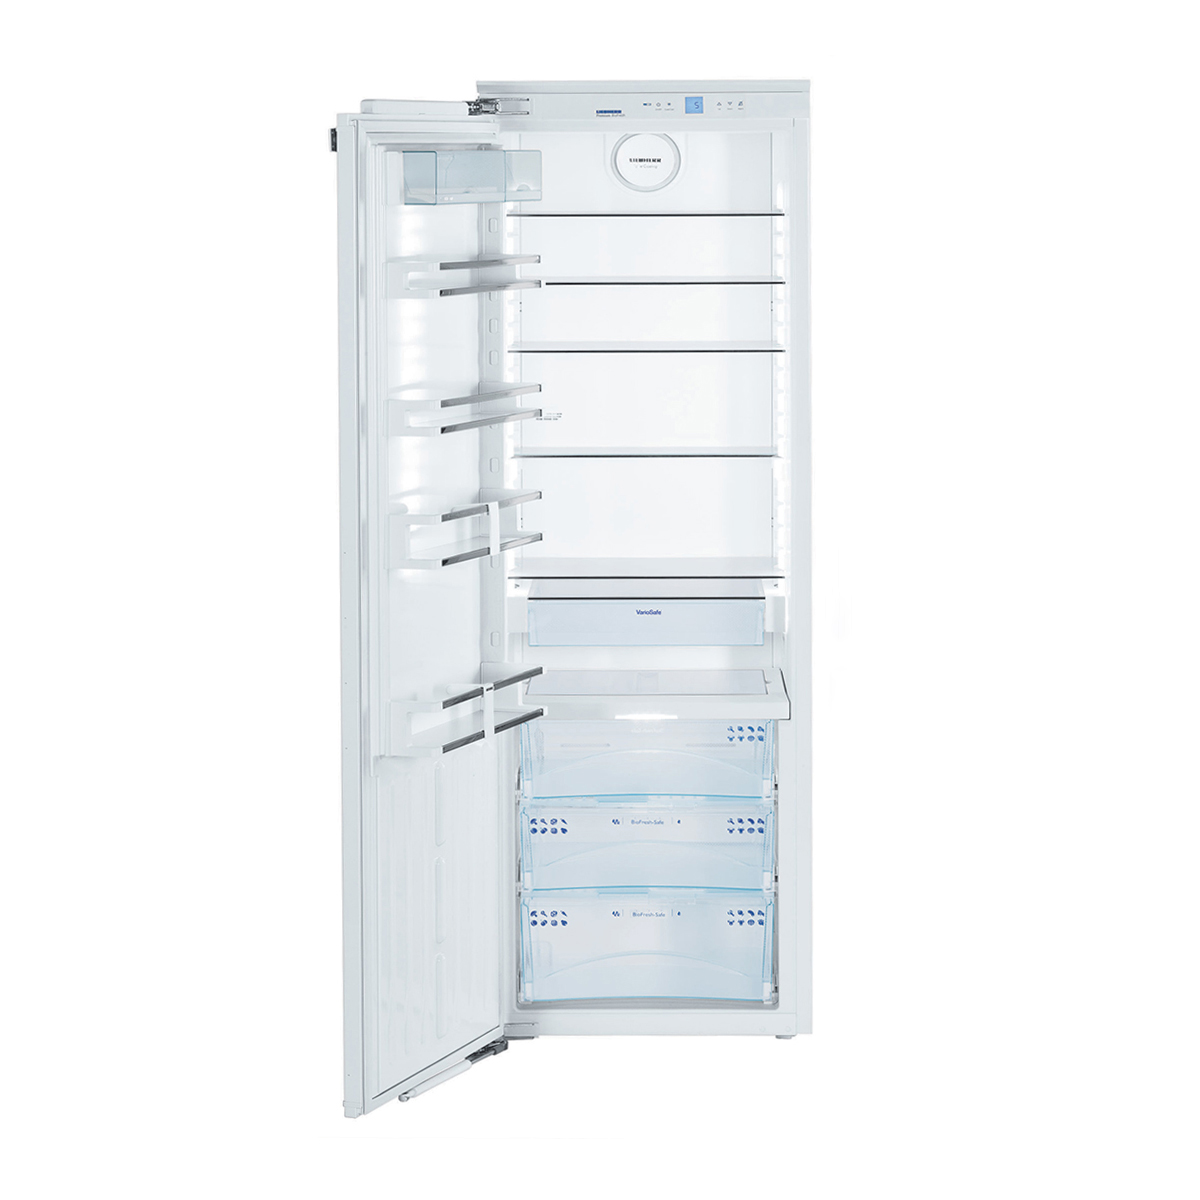 Liebherr SIKB3550LH 344L Integrated Fridge